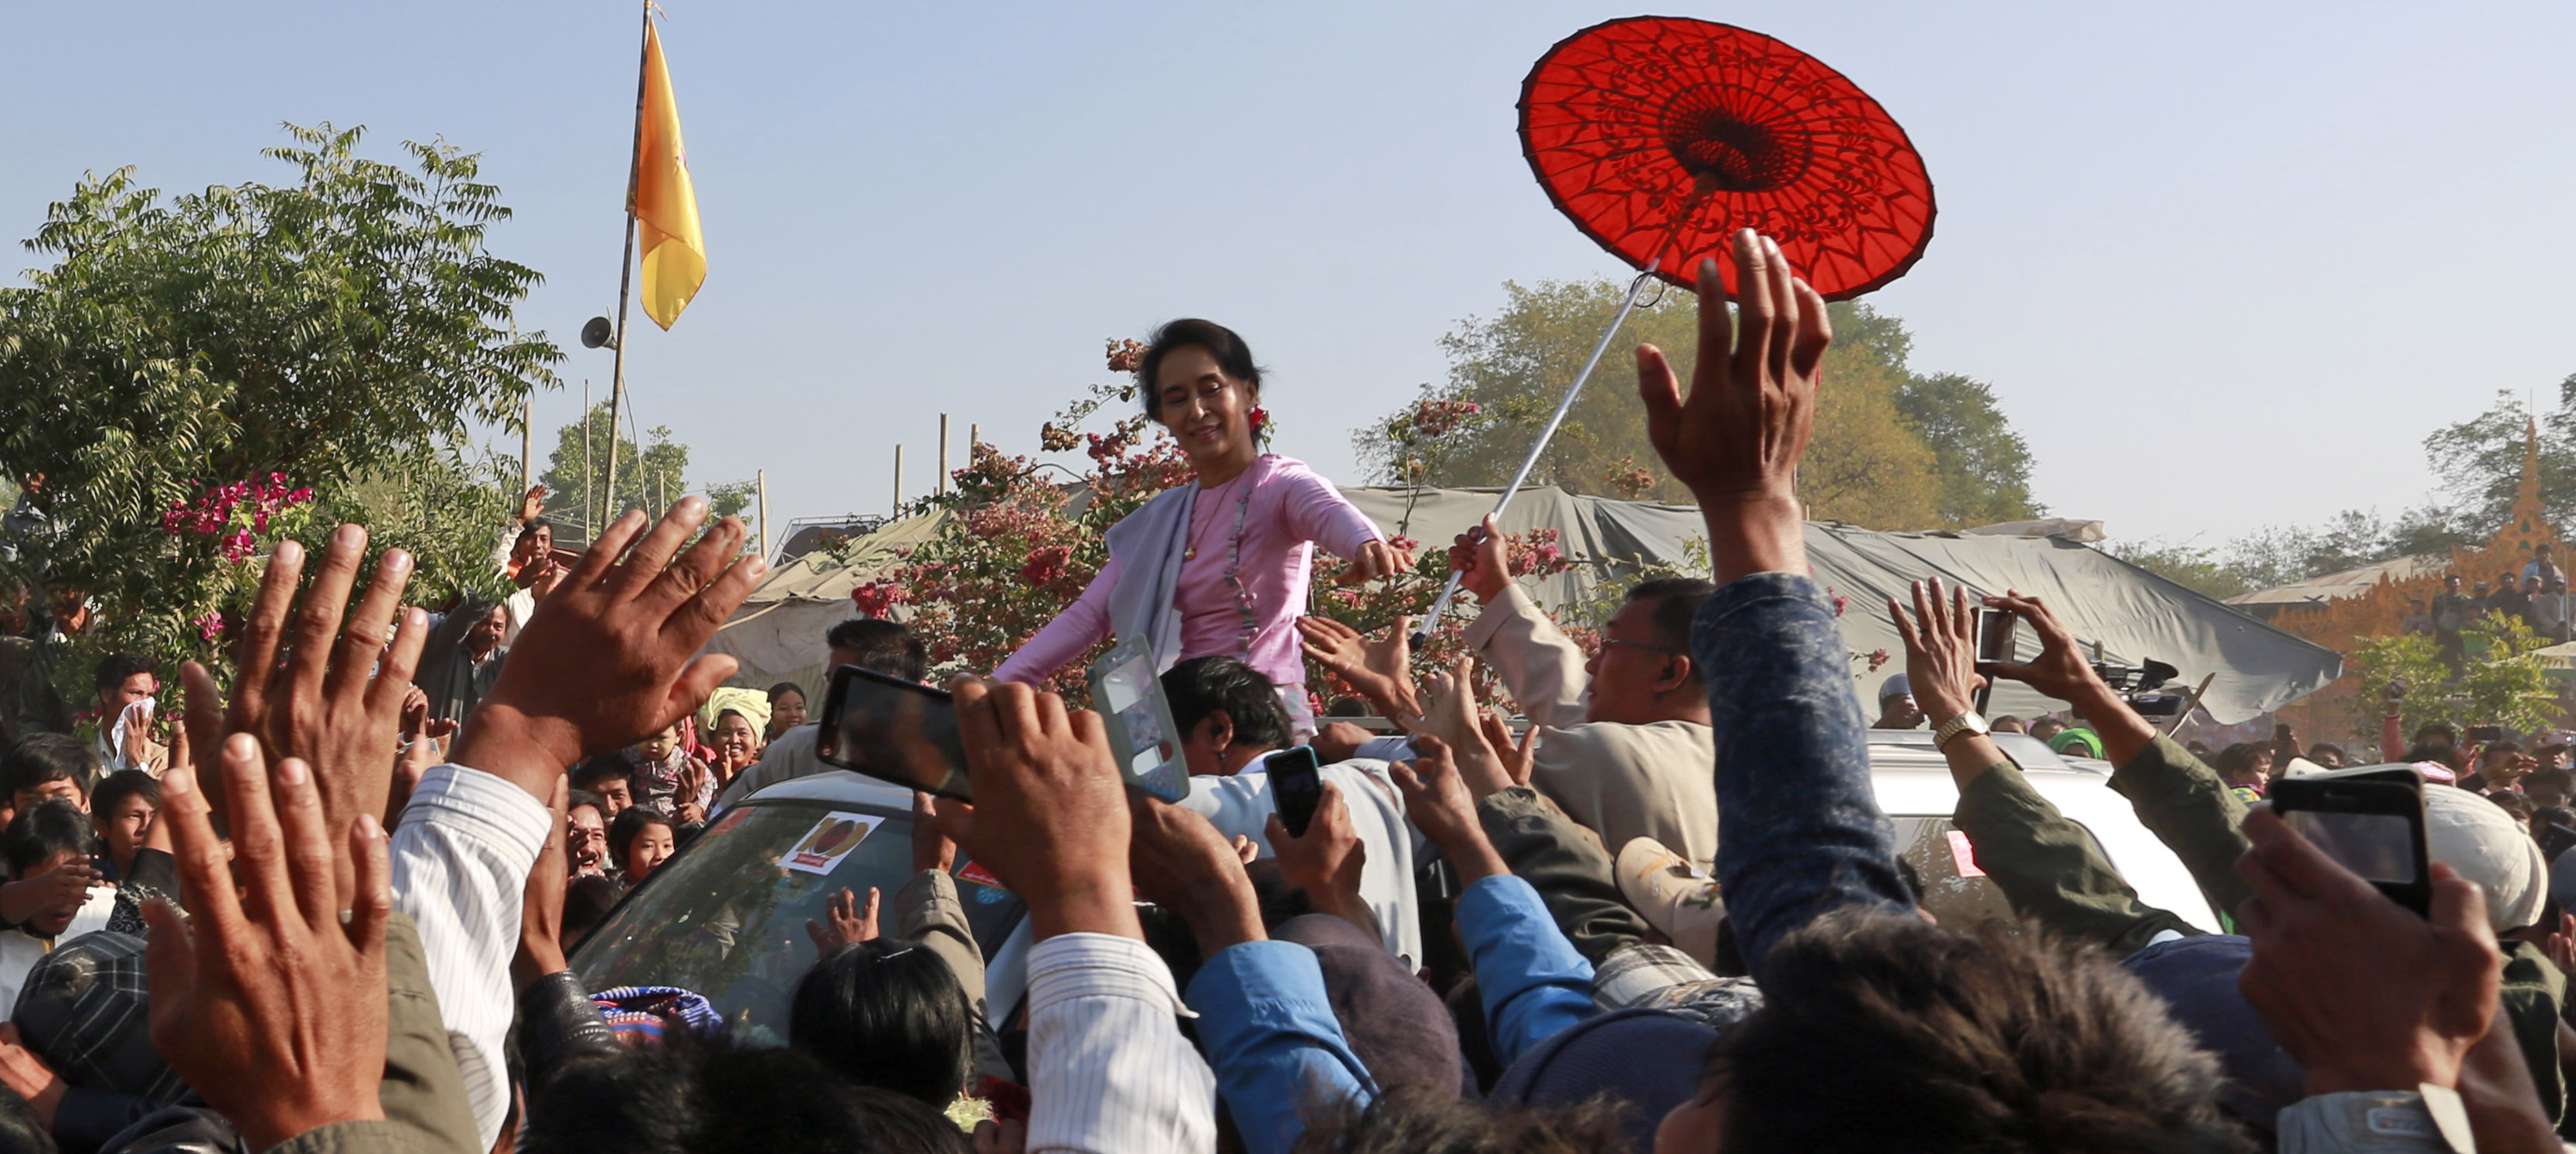 Myanmar Opposition Leader Aung San Suu Kyi greets supporters from vehicle as she leaves a ceremony to mark the 100th birthday anniversary of her late father, Gen. Aung San, at Nat Mauk township, native place of her father, Magwe Division, central Myanmar, Friday, Feb.13, 2015. Commemorations are held all across the country to celebrate the 100th year birth anniversary of the late independence hero Gen. Aung San, father of Myanmar's democracy icon Aung San Suu Kyi. Photography and painting exhibitions, performances and fairs are being held for several days to mark the 100-year birthday of Aung San.   (AP Photo/Khin Maung Win)